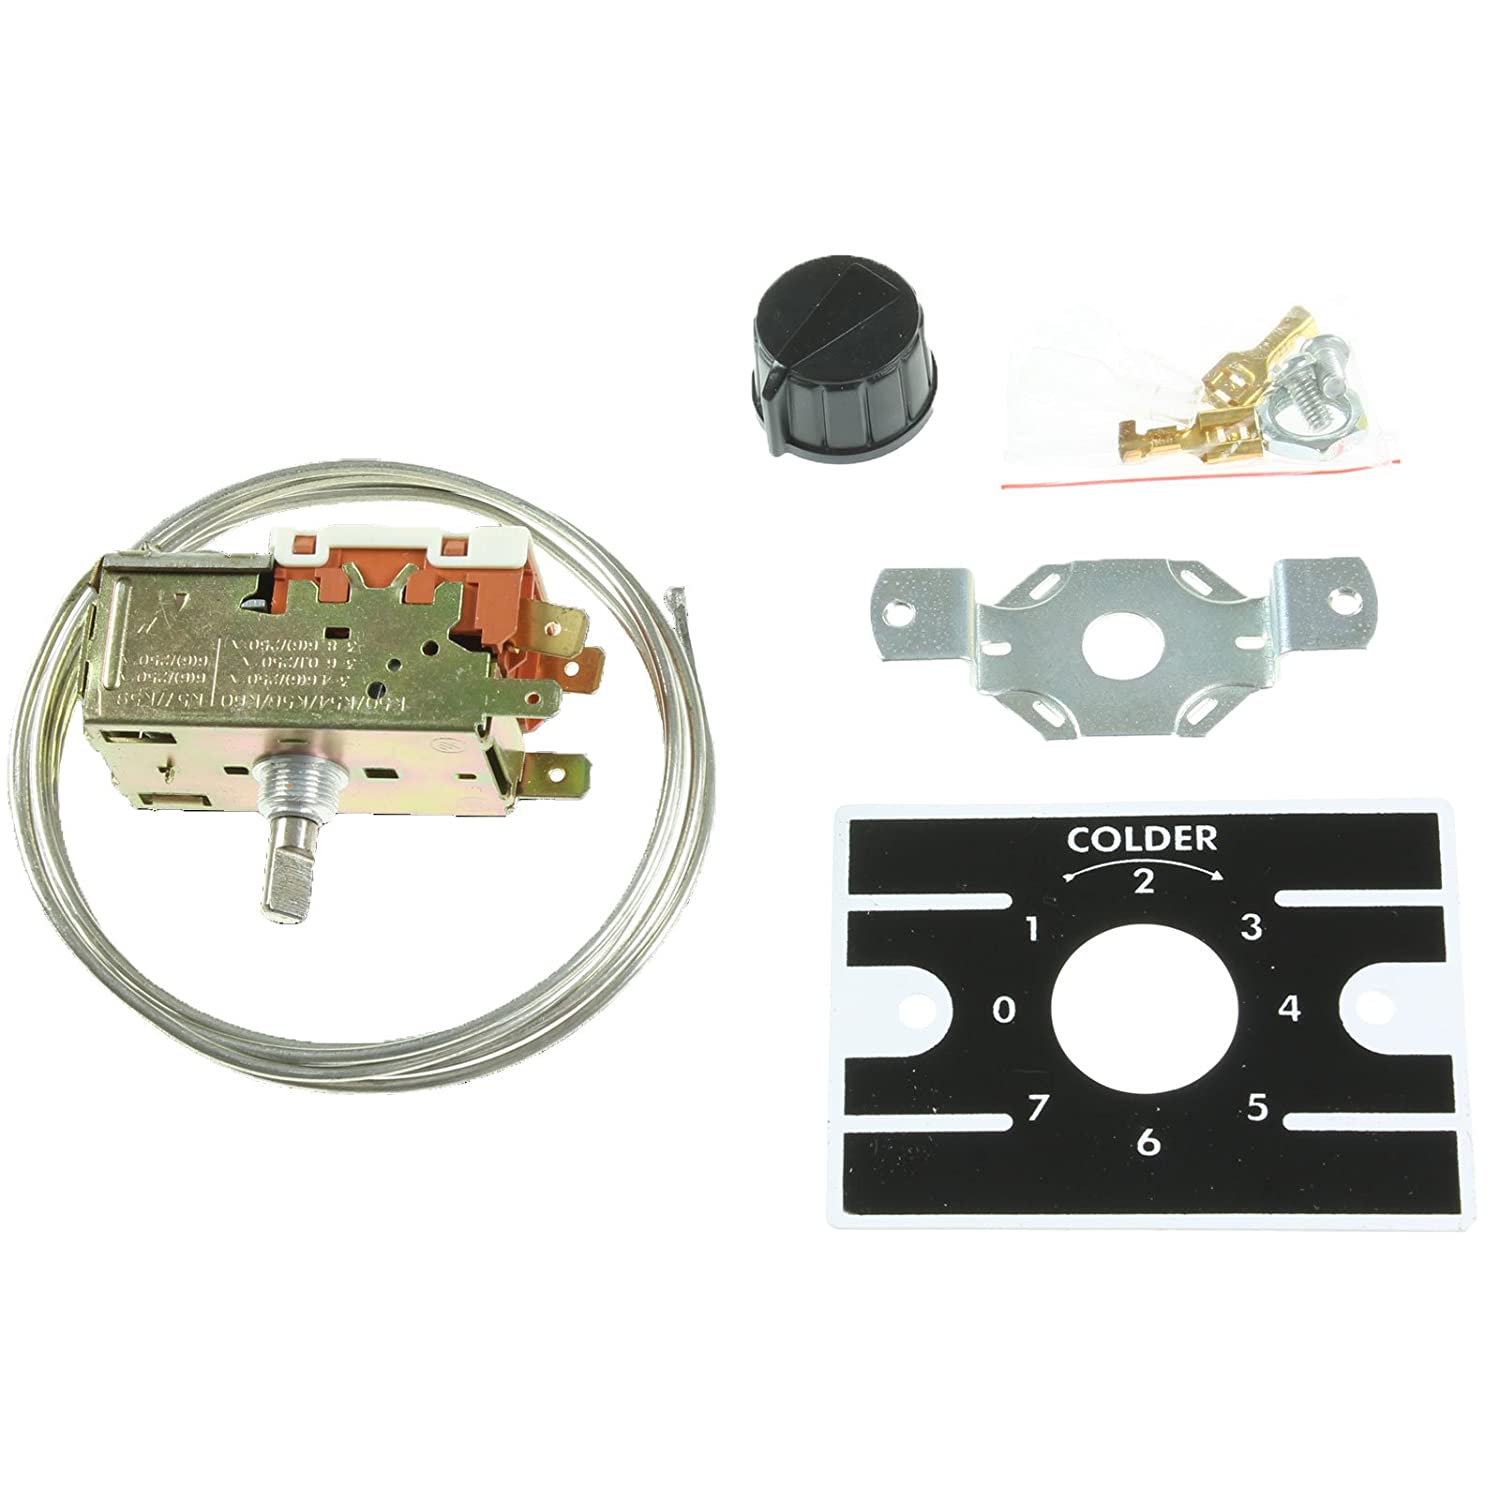 First4Spares - Repuesto k50p1126000 Kit de termostato para nevera ...